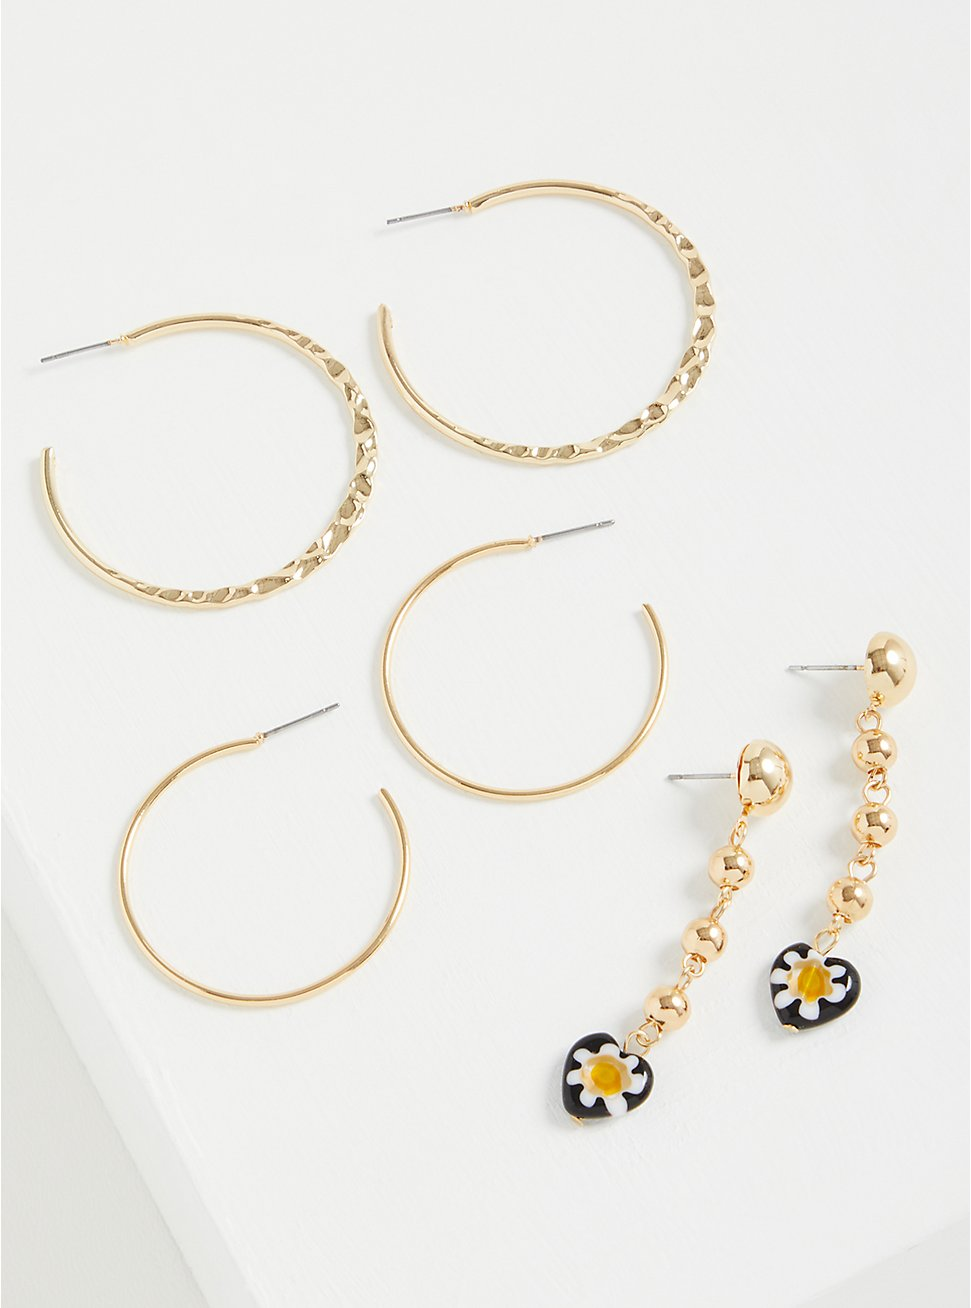 Floral Beaded Drop And Hoop Earring Set of 3 - Gold Tone, , hi-res